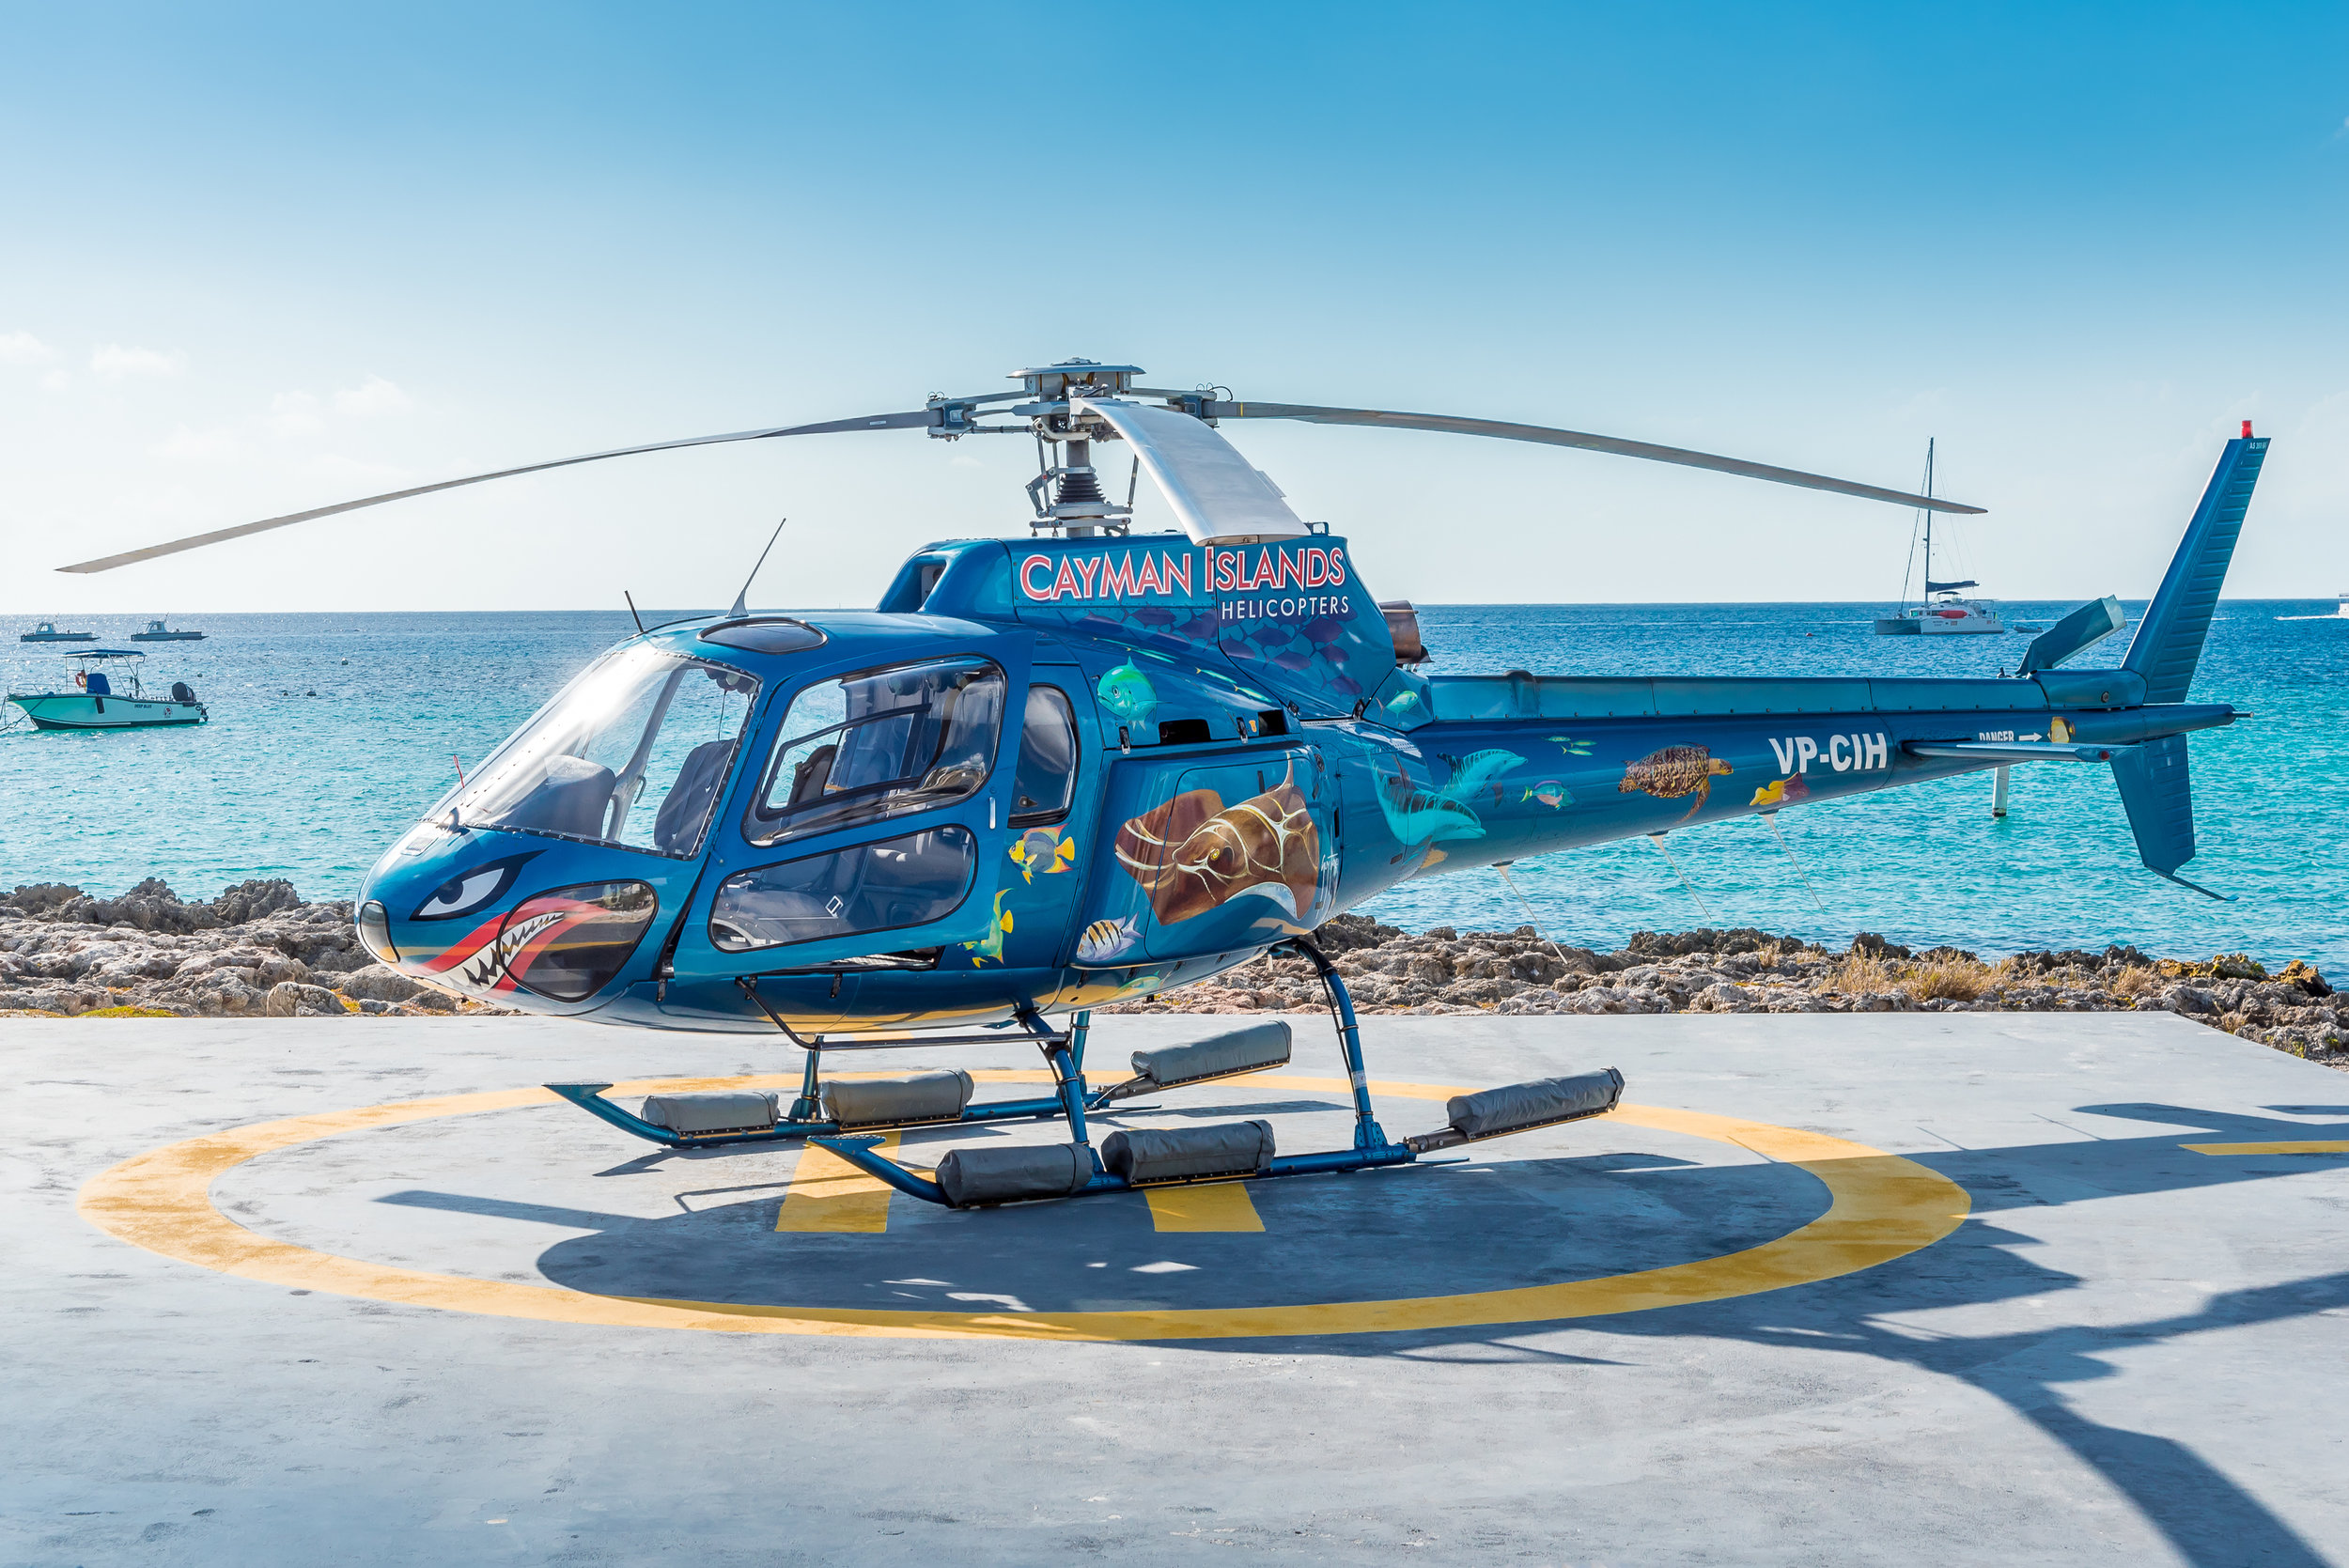 CI_HELICOPTERS-1.jpg